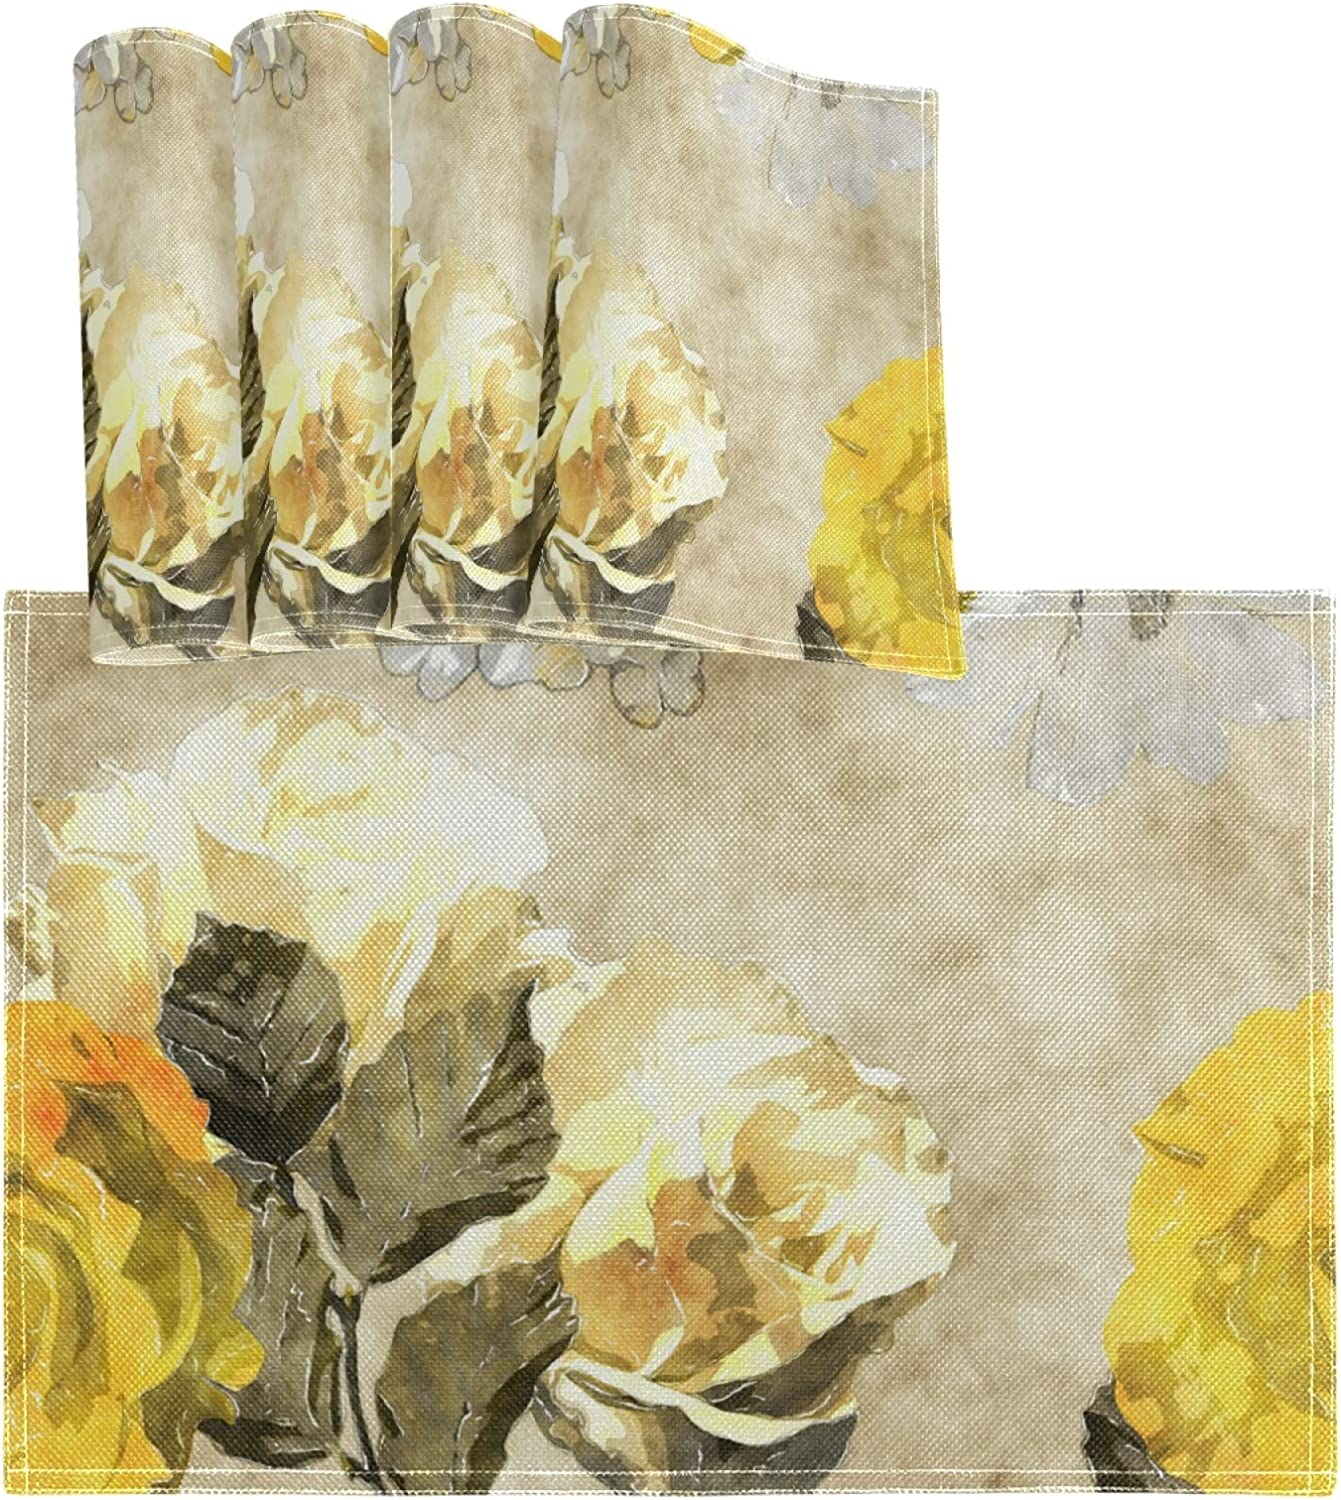 """vvfelixl Watercolor Floral Yellow White Roses Phlox Asters Set of 4 Placemats 18""""X12"""" Table Mats Cloth Kitchen Linen Sets Linen-Like Heat-Resistant Dining Home Decorations Everyday Use"""